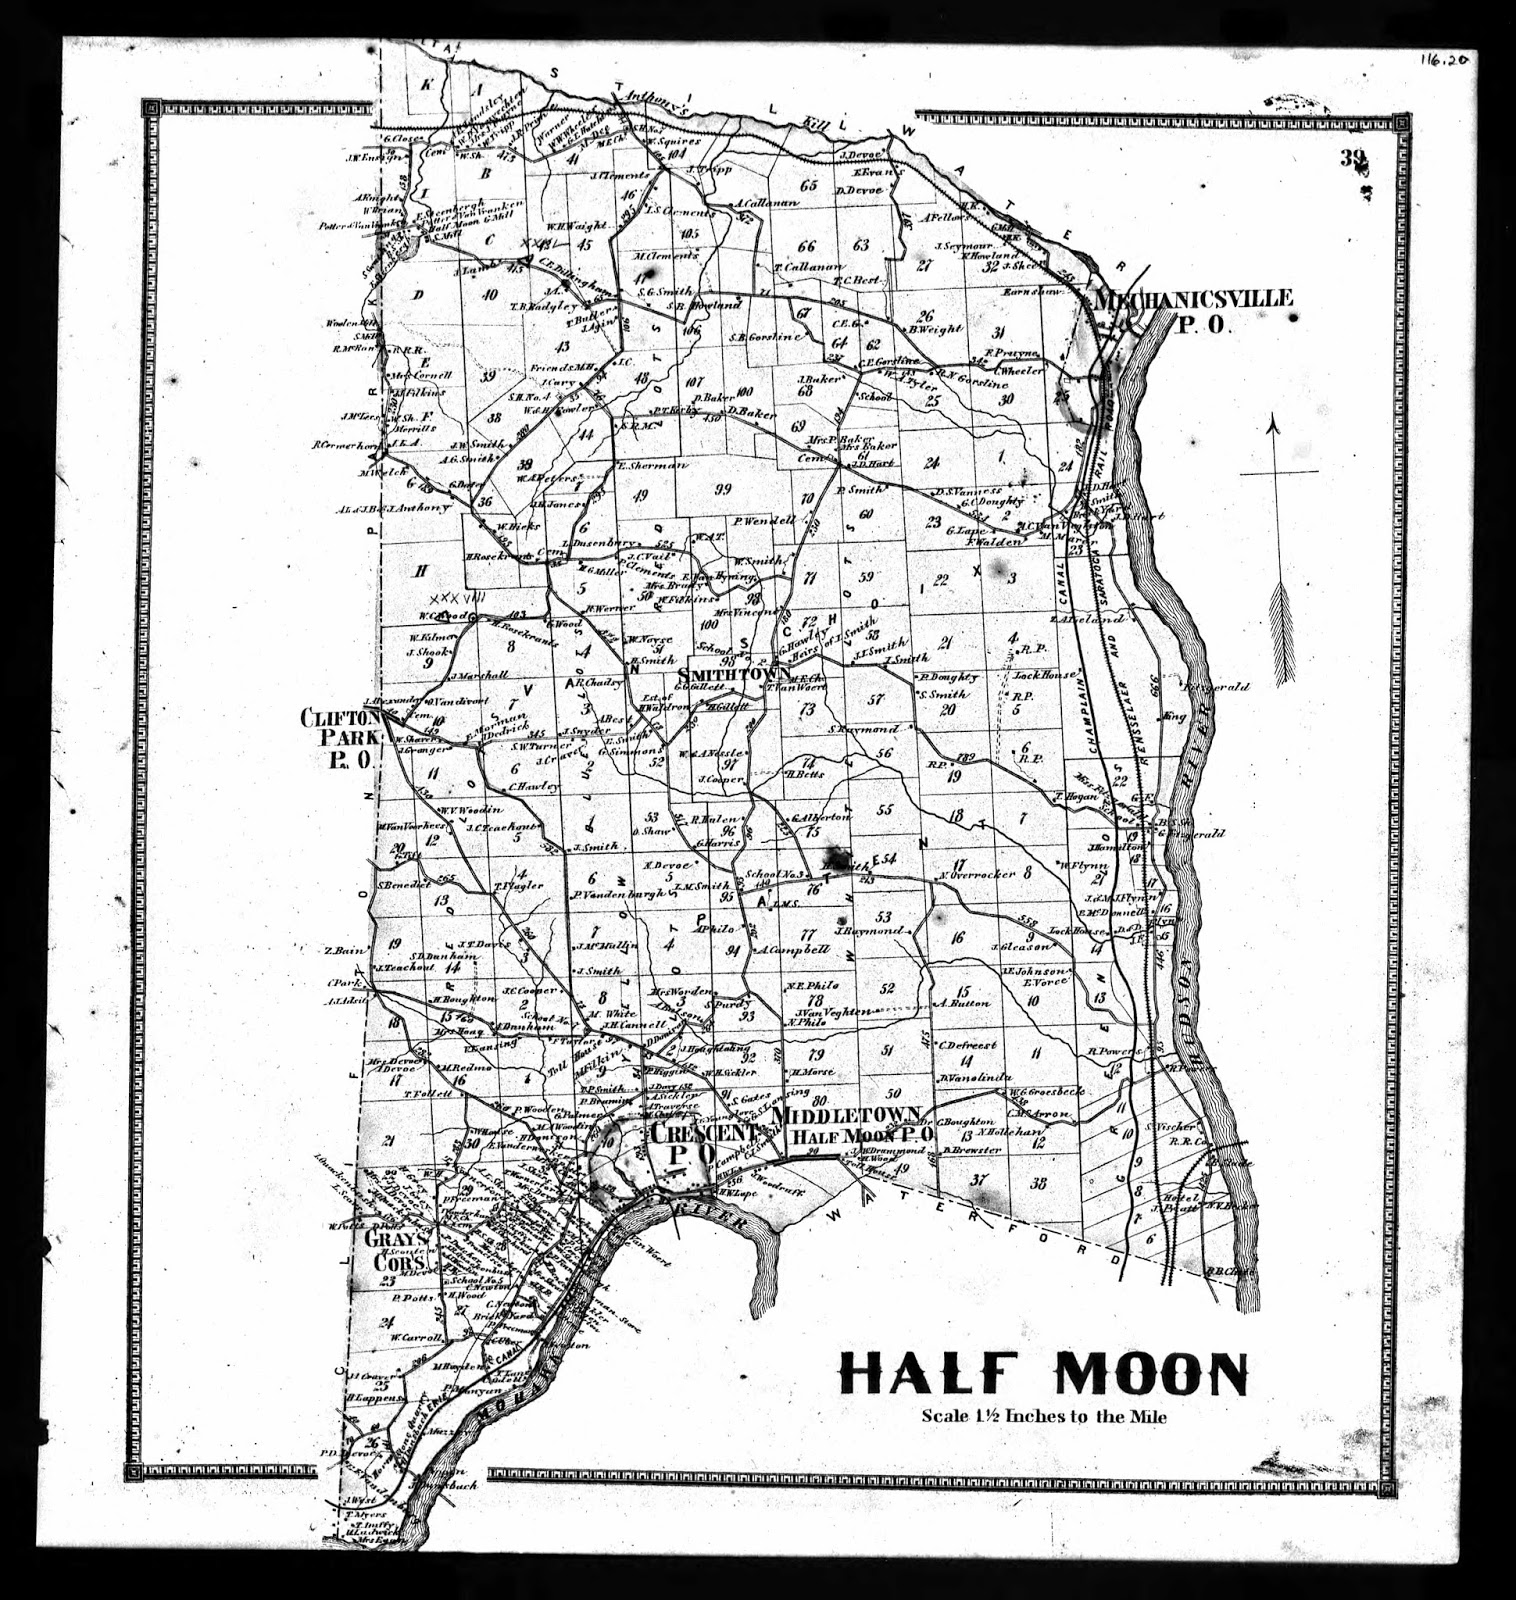 The Vincent Family: Land Ownership Map - Halfmoon